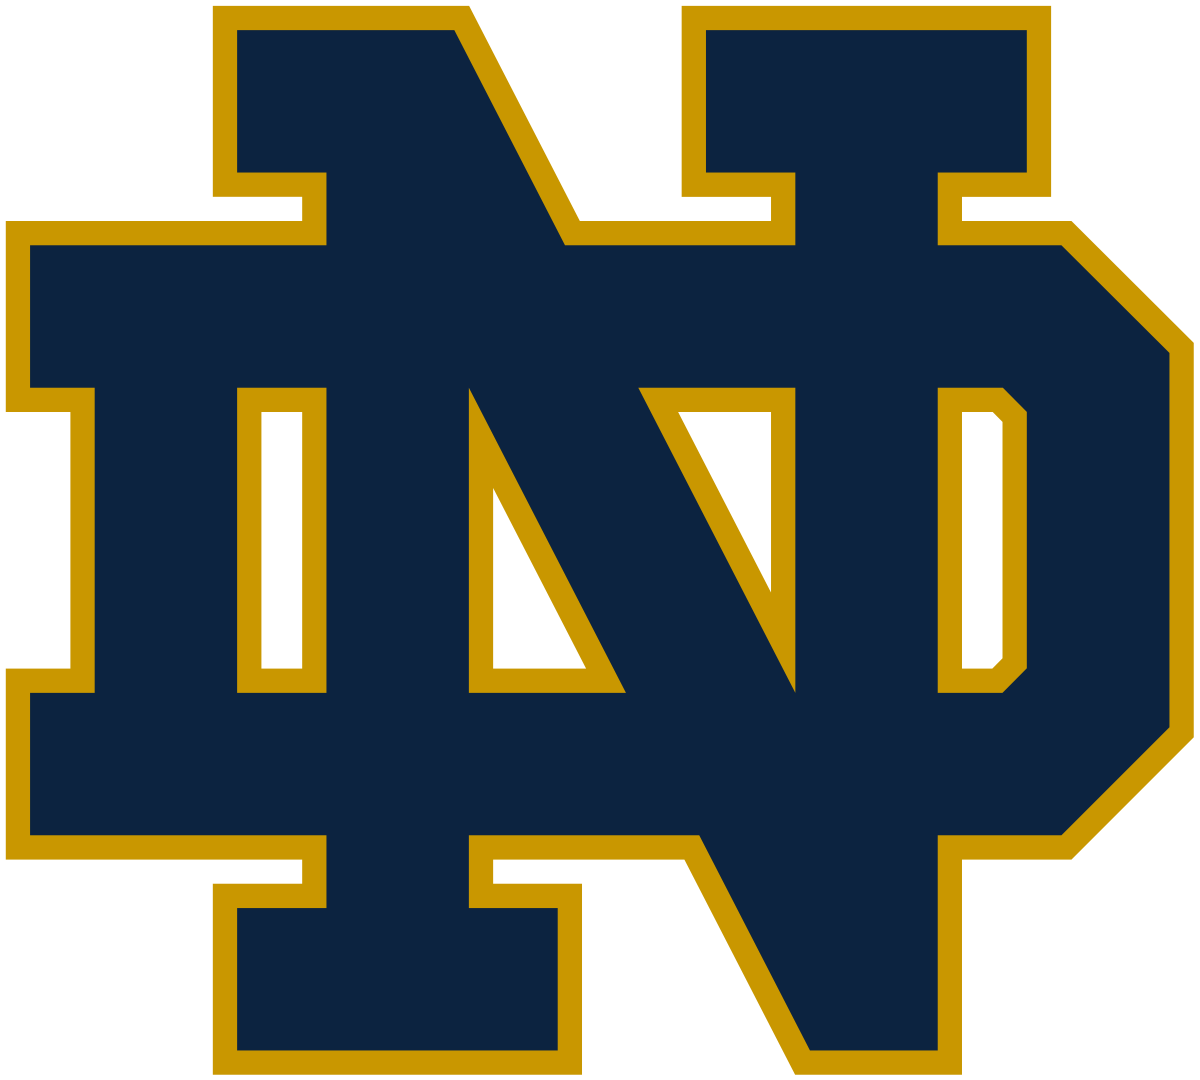 Pin By Michelle On Clothes Fighting Irish Logo Notre Dame Football Notre Dame Fighting Irish Football